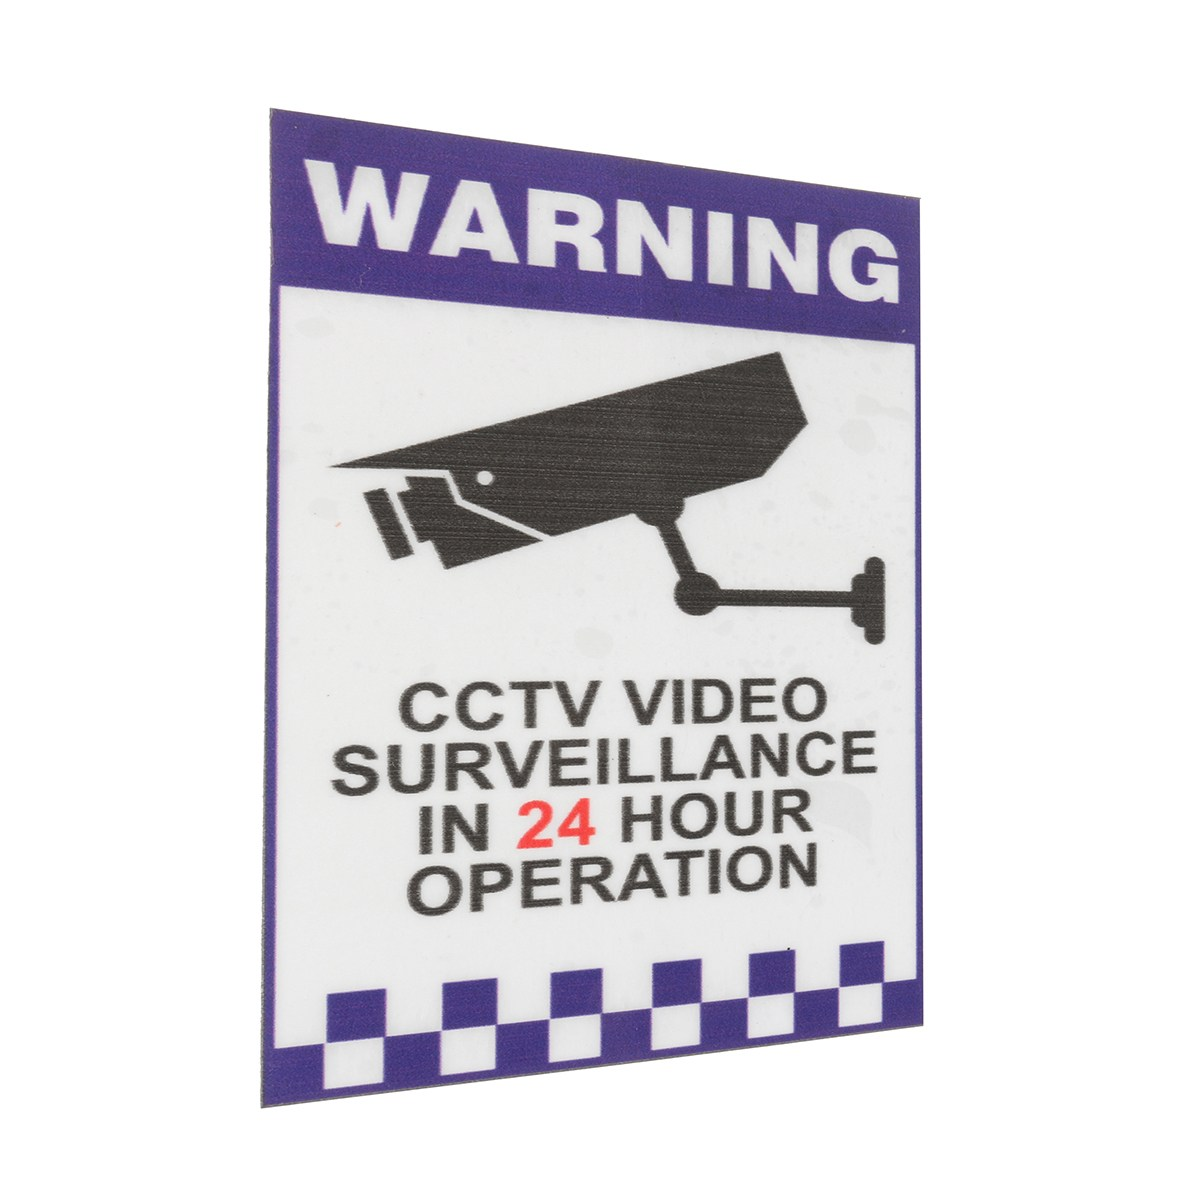 NEW Safurance 24 Hour Internal Warning CCTV Security Surveillance Camera Decal Sticker Sign Home Safety